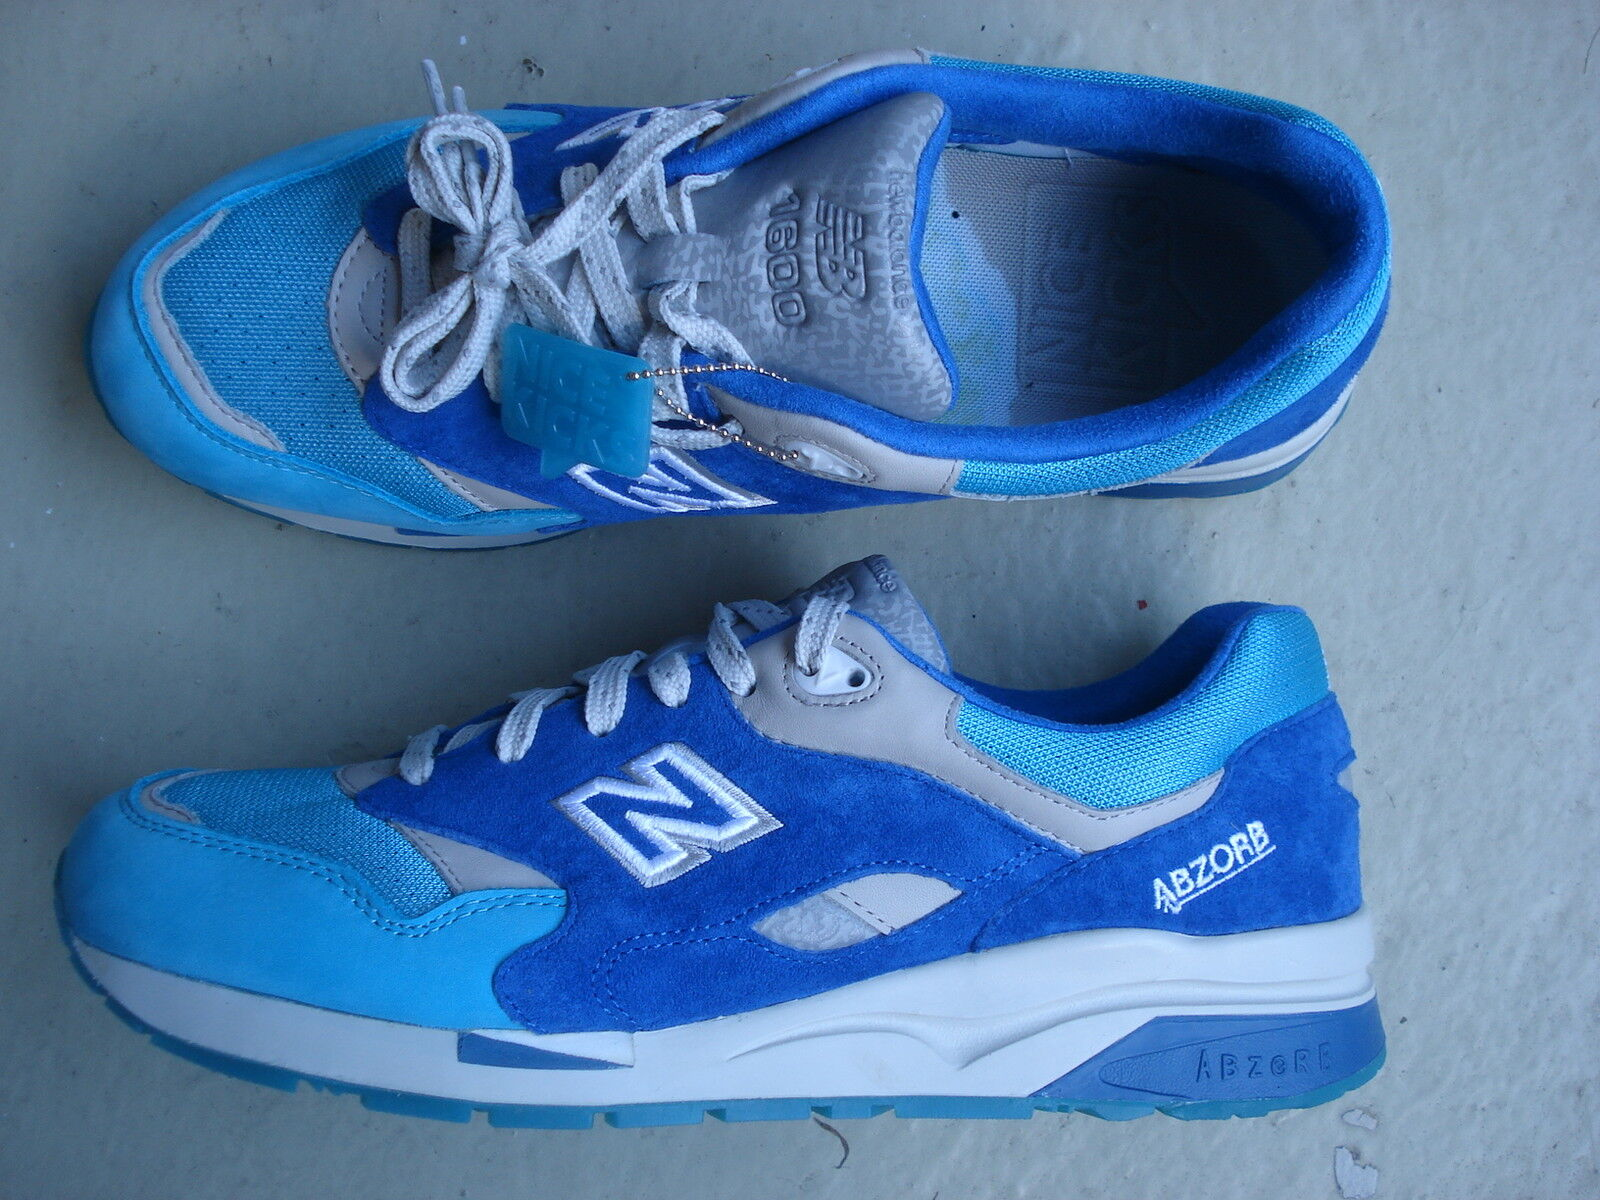 NICE Kicks x New Balance CM 1600 NK 45.5 Grand Anse Blue/Aqua